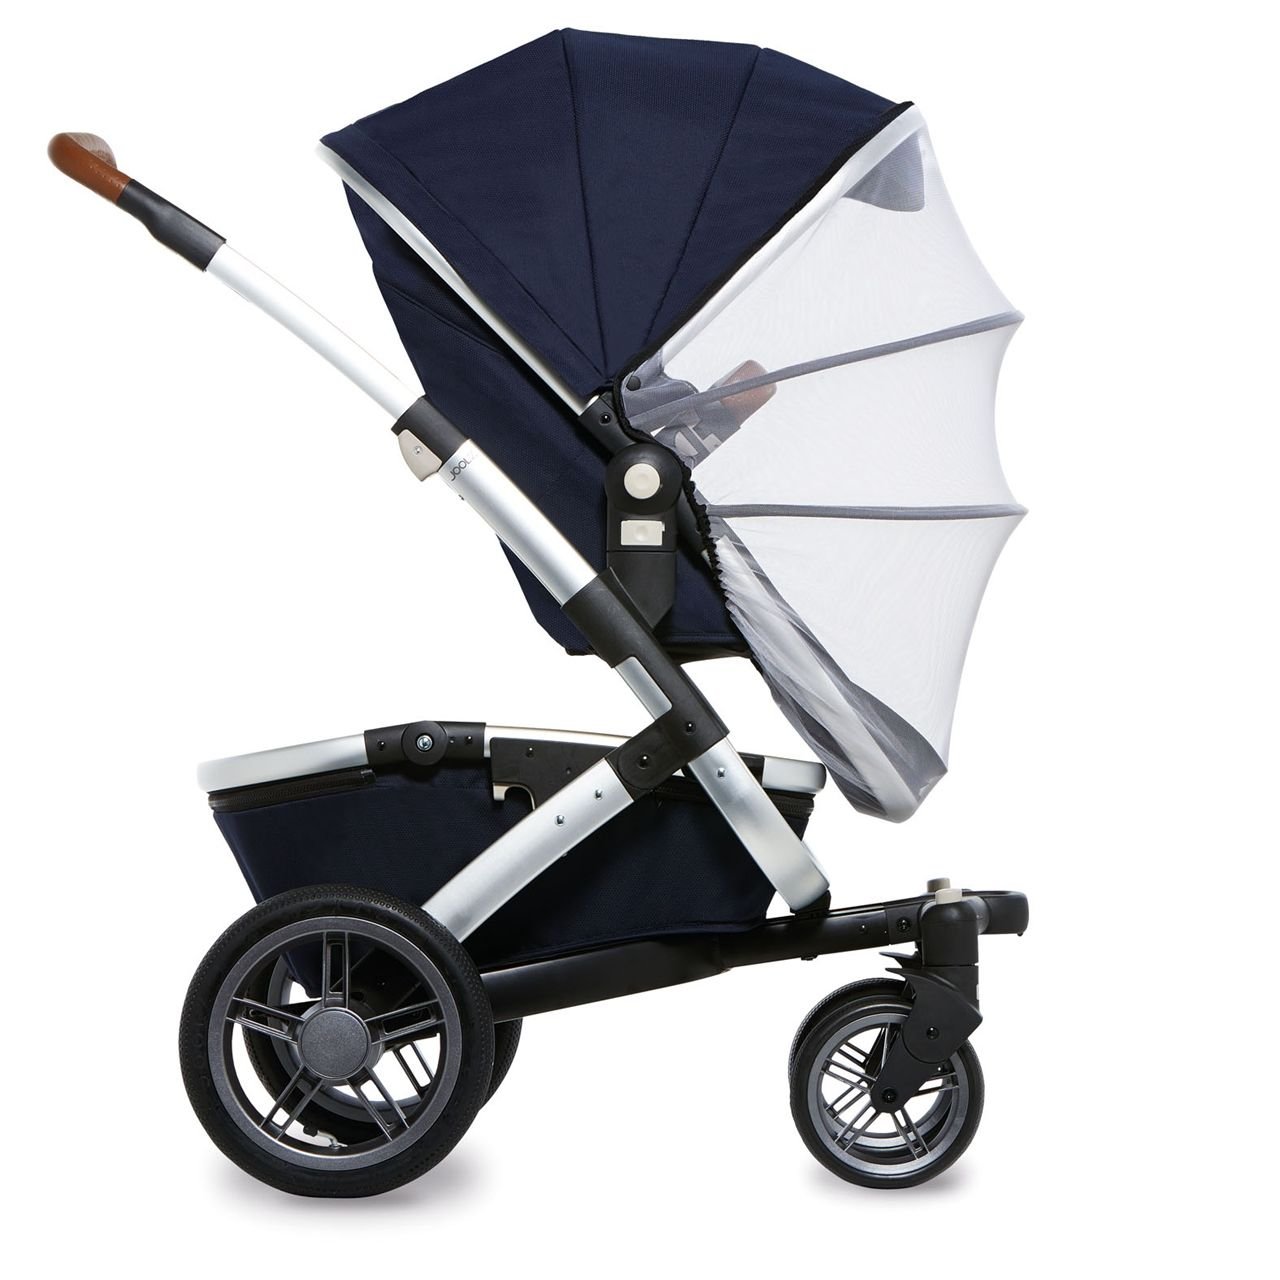 The Joolz Mosquito Net fits the Joolz Geo Carrycot and